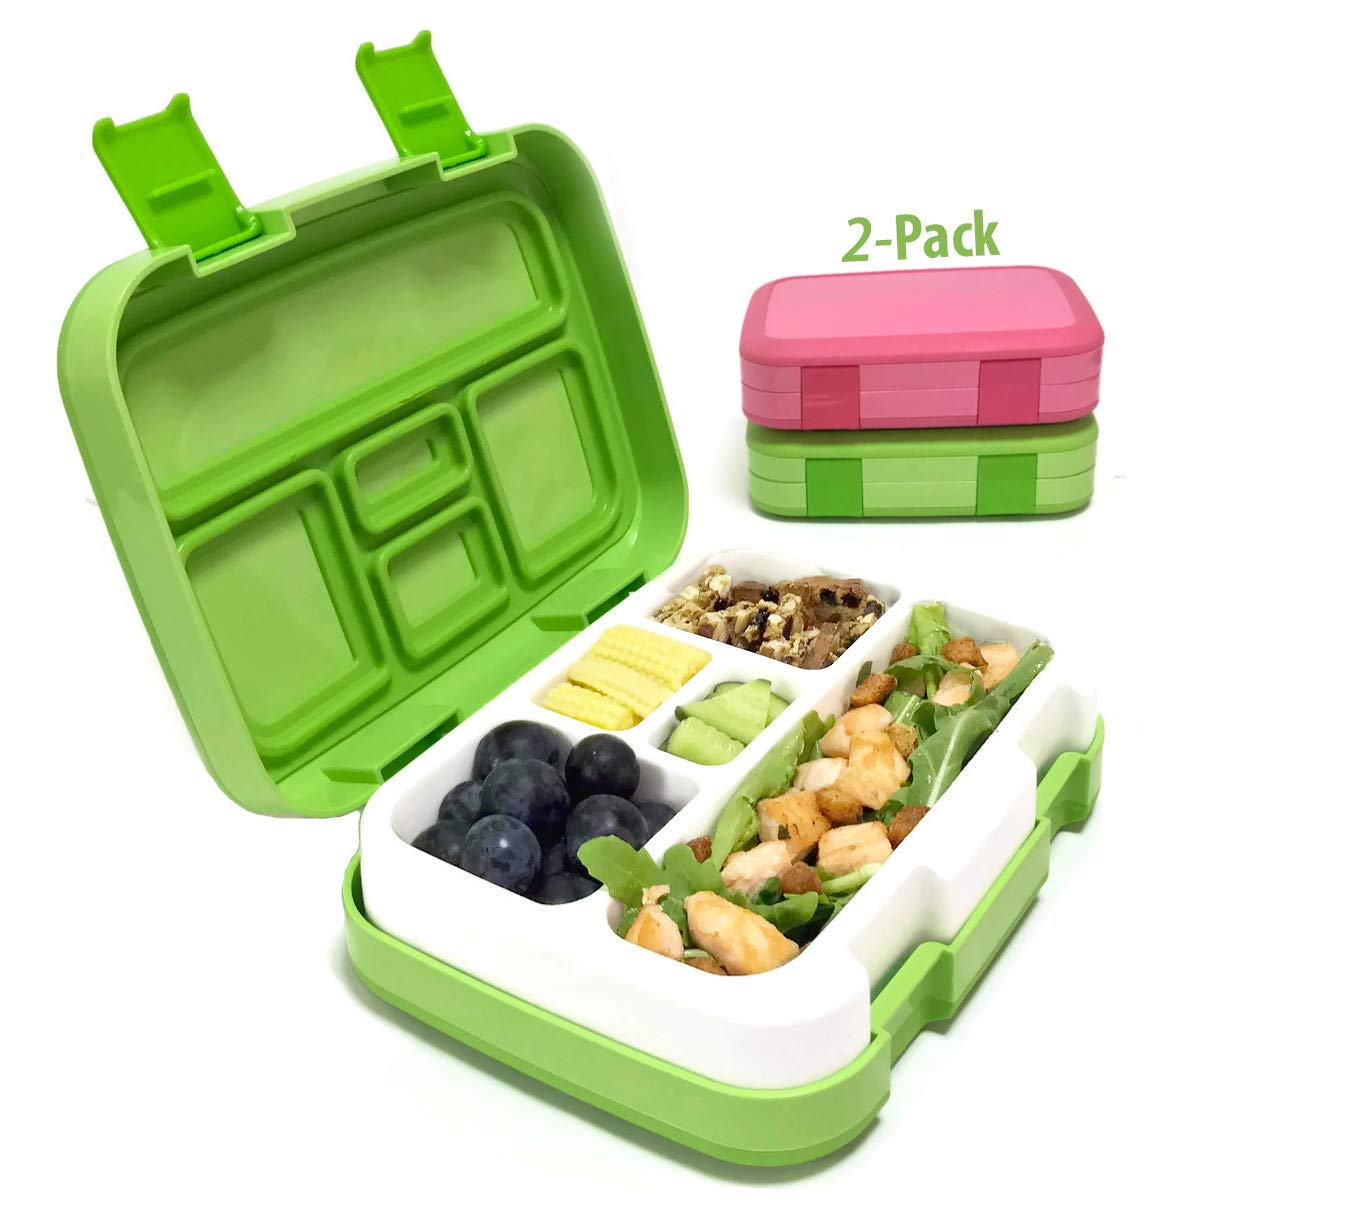 cd8f832d90f0 PlusPoint Bento Lunch Box for Kids and Adults, 2 Leakproof Food & Meal Prep  Containers with 5 Compartments + Full Cutlery Set Perfect for Healthy ...